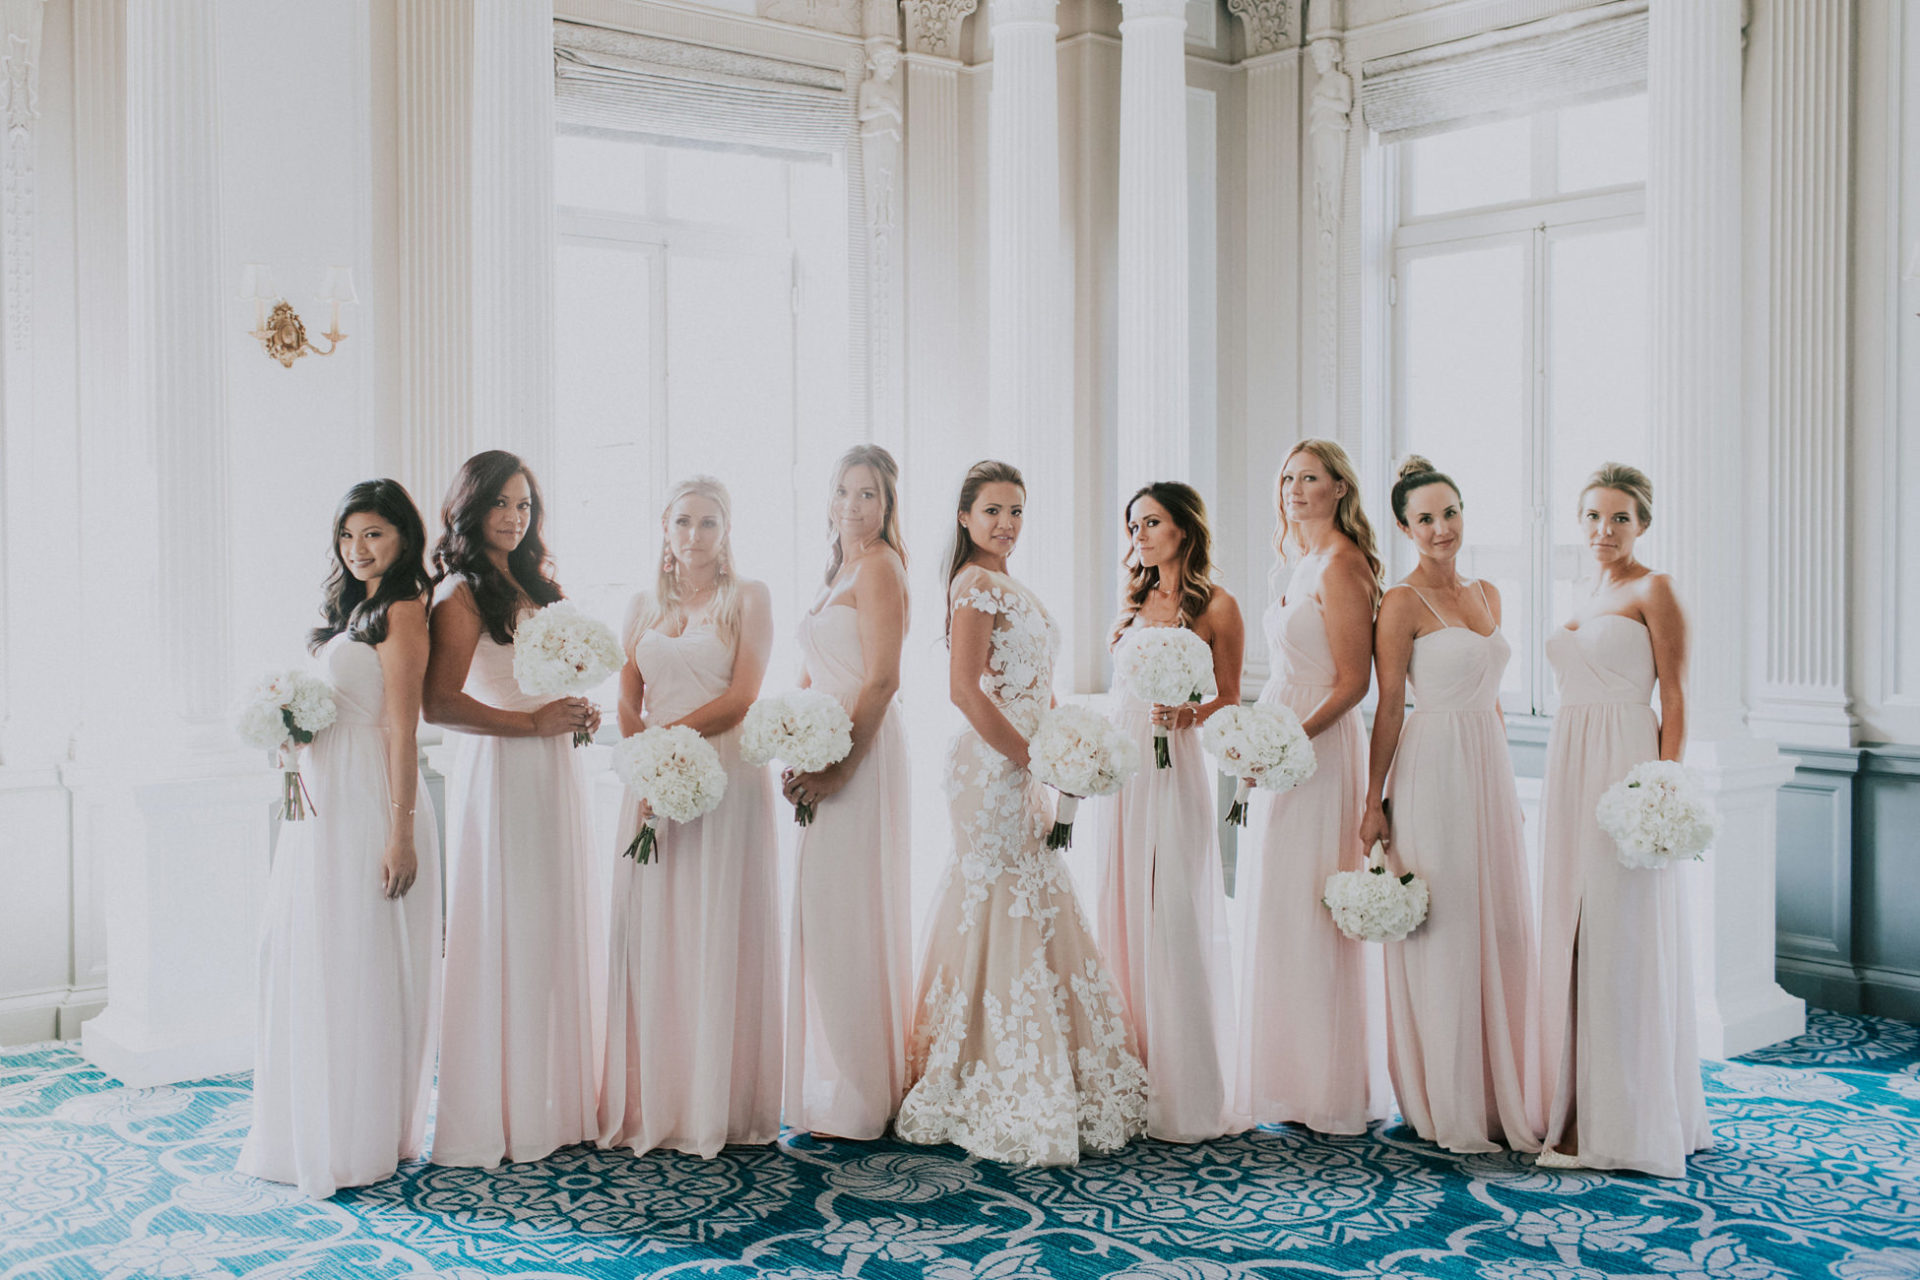 best-top-los-angeles-destination-wedding-photographer-hipster-modern-quirky-editorial-romantic-epic-41-bridesmaids-squad-kardashians-light-airy